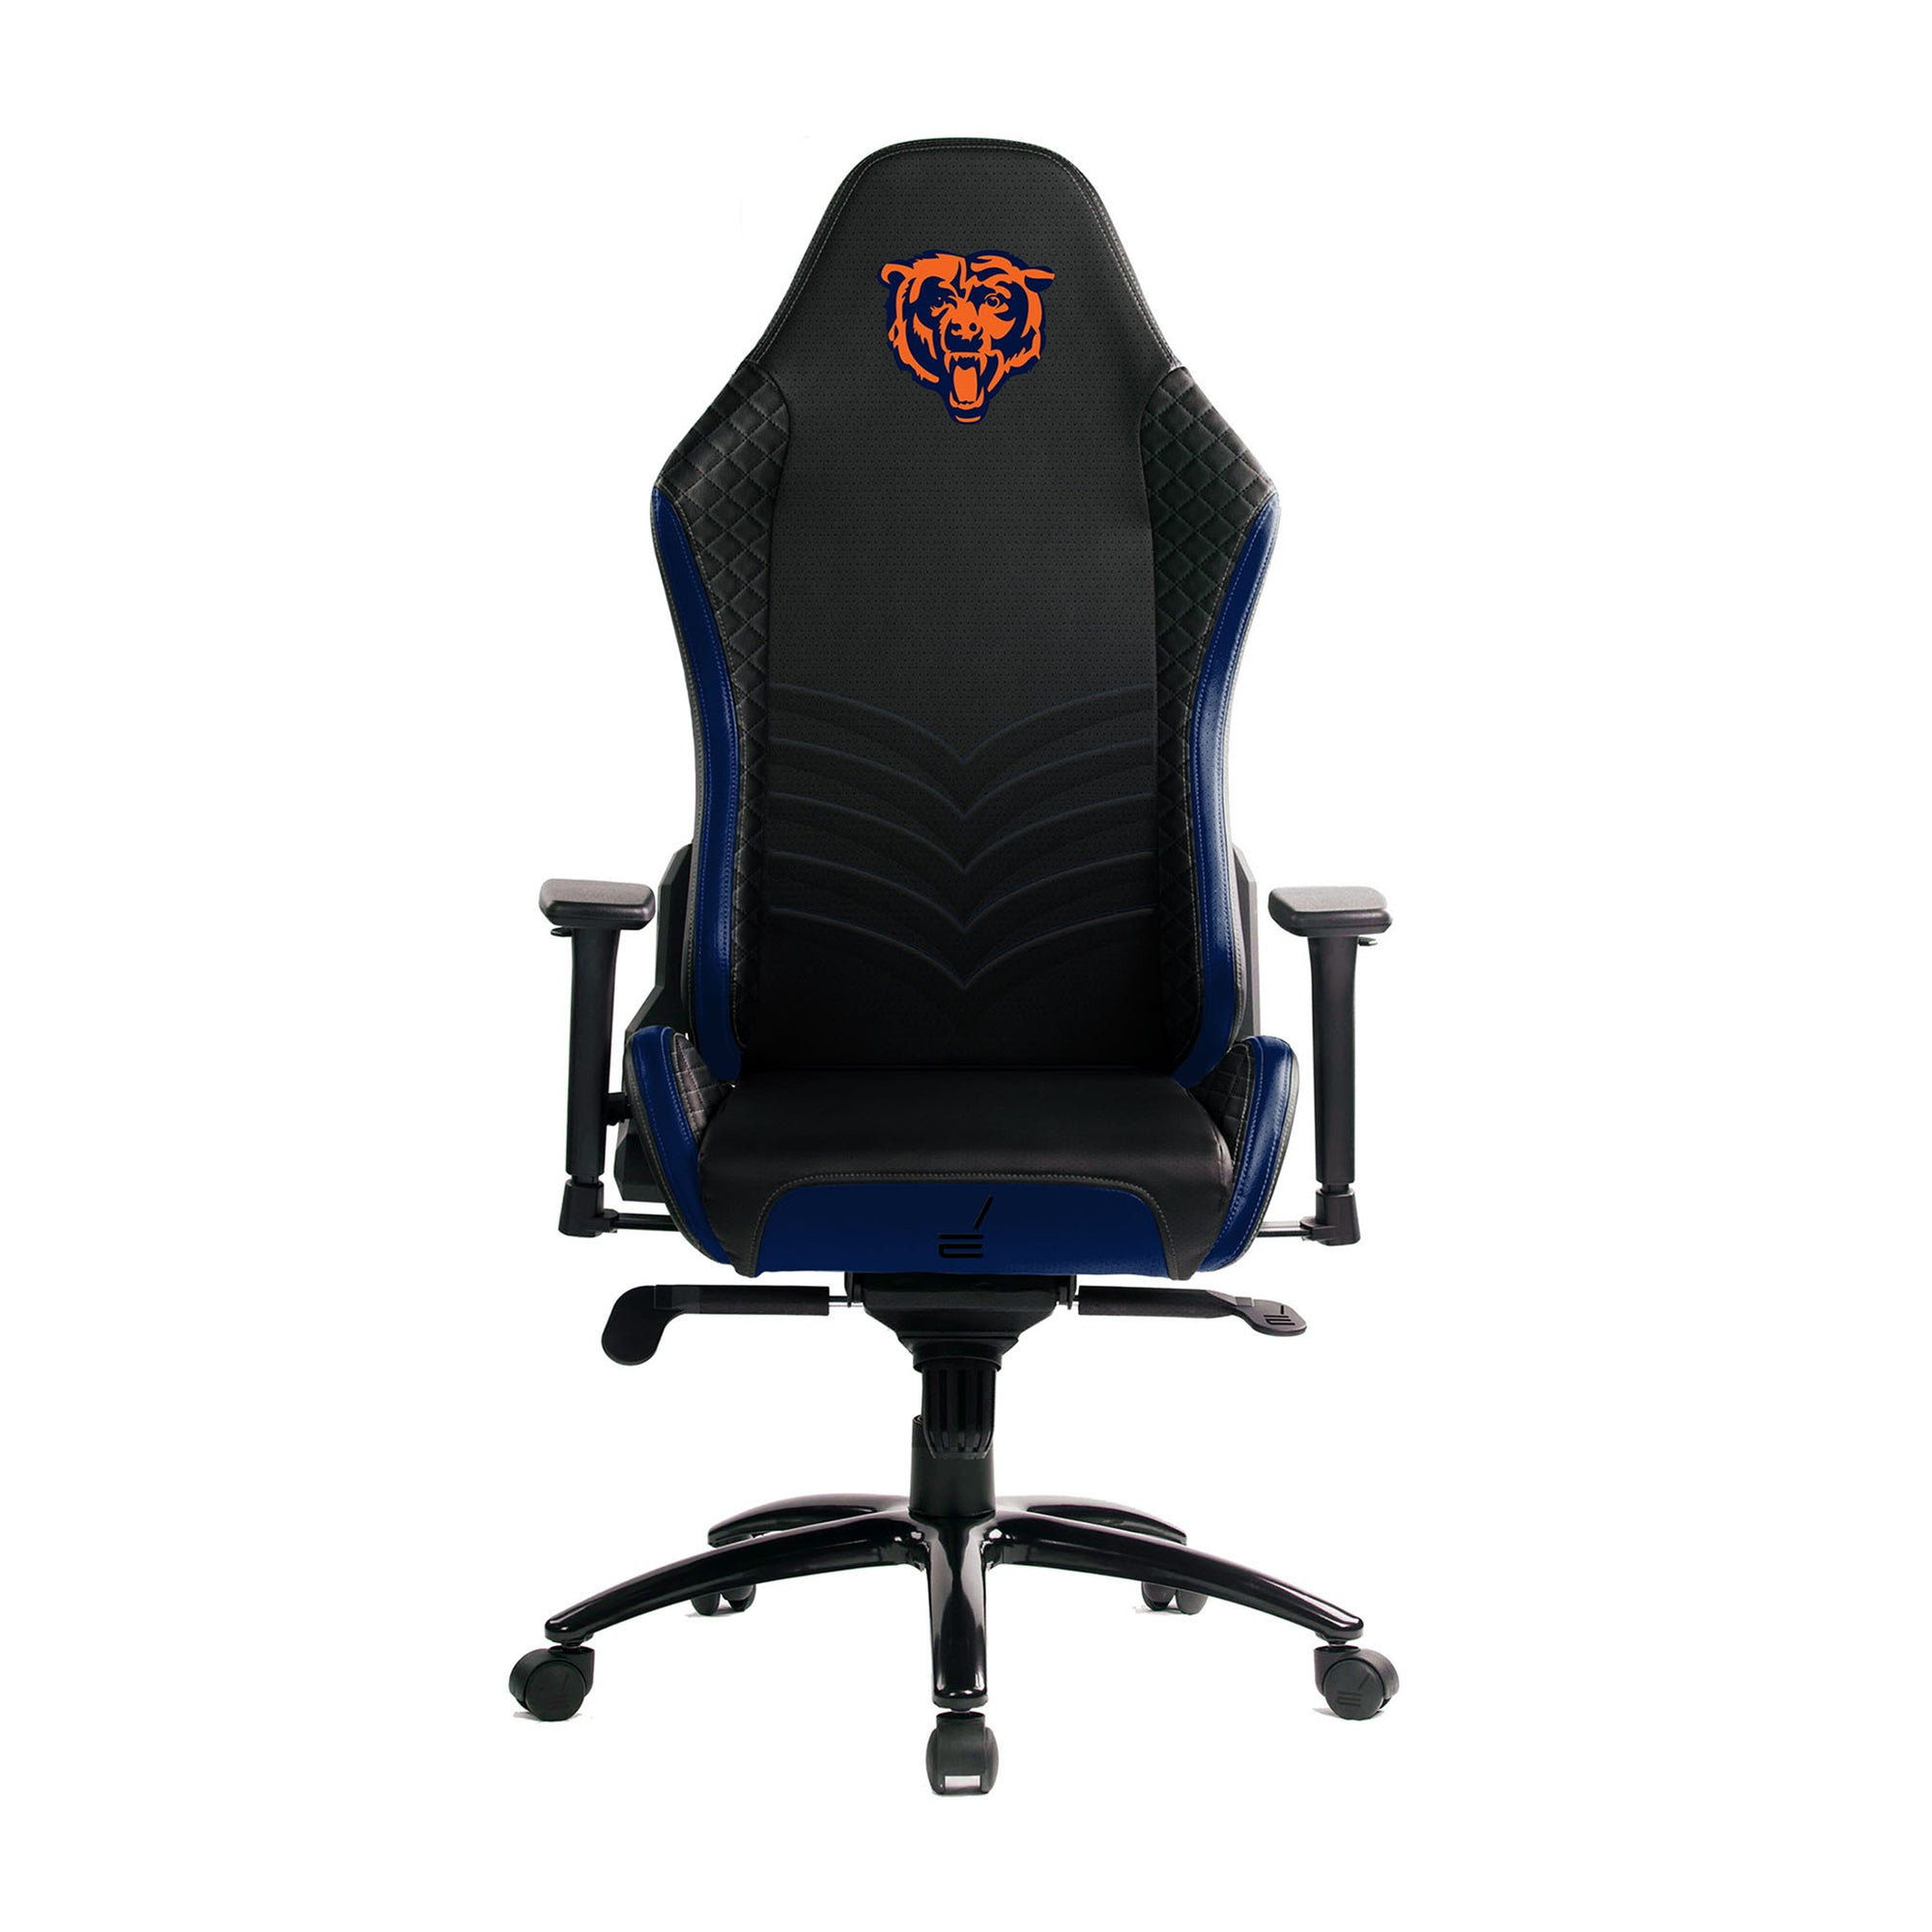 Chicago Bears Pro Series Gaming Chair